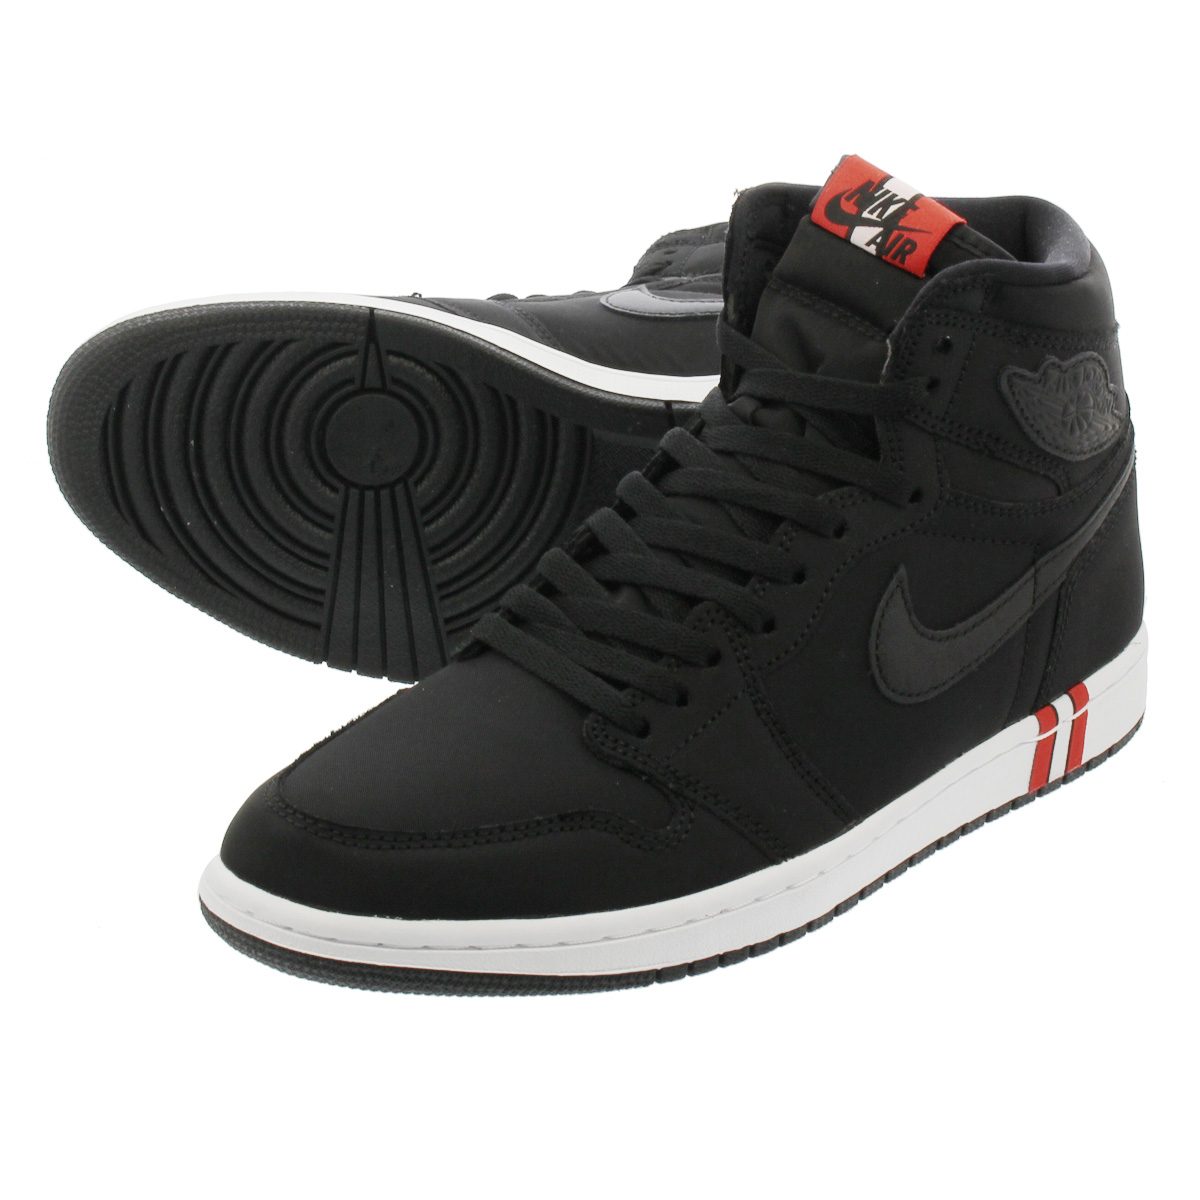 NIKE AIR JORDAN 1 RETRO HIGH OG BCFC 【PSG】 ナイキ エア ジョーダン 1 レトロ ハイ OG BLACK/WHITE/CHALLENGE RED ar3254-001